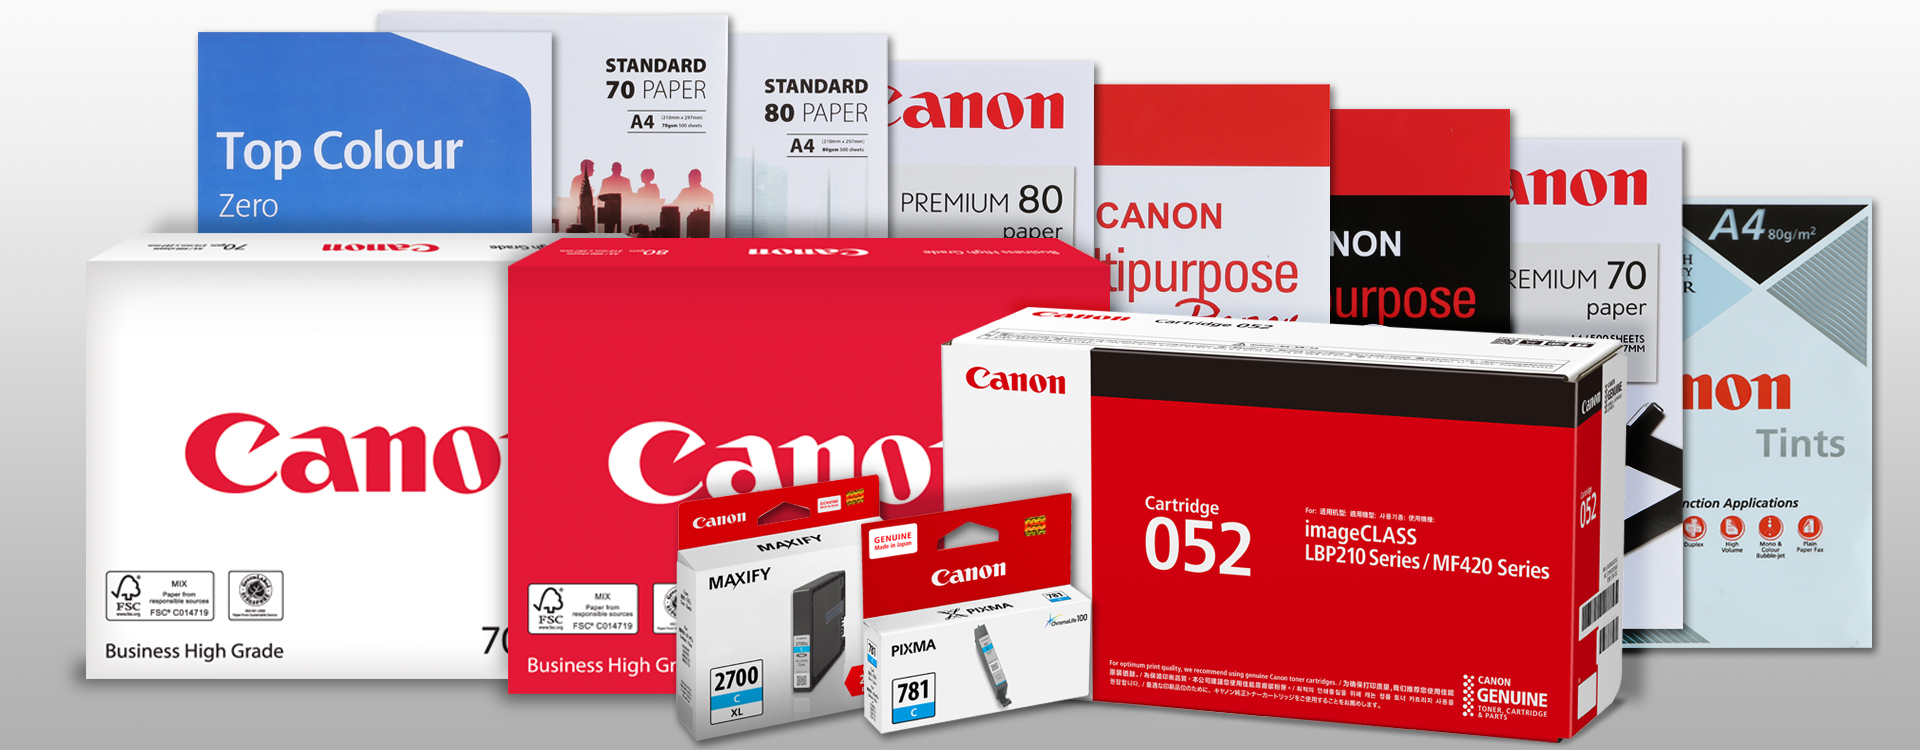 Product List Supplies Canon India Cartridge Cl 811 Color